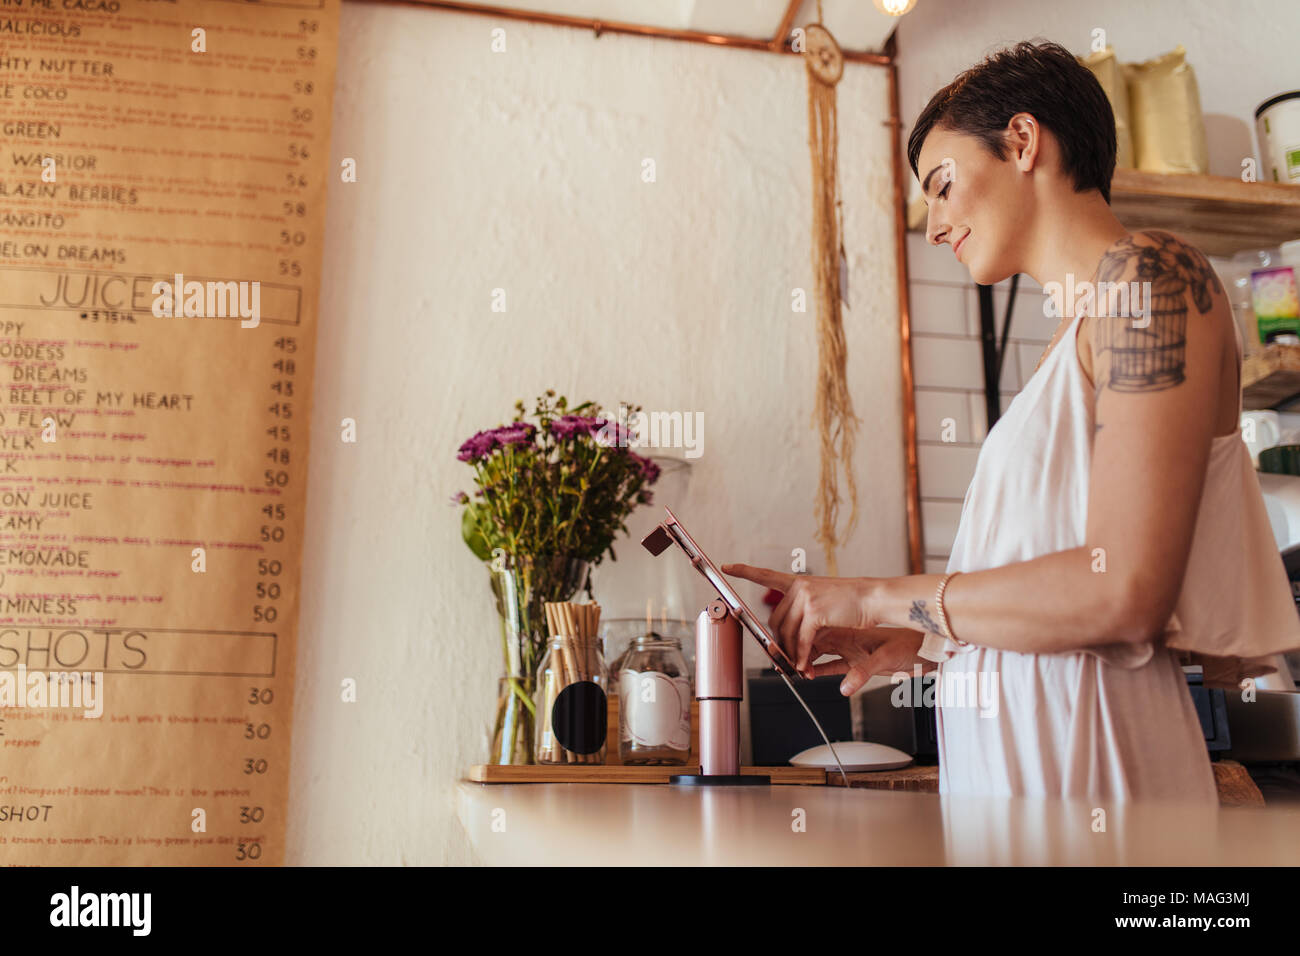 Femme debout au comptoir de facturation de son restaurant. Propriétaire de restaurant l'exploitation de la machine de facturation. Photo Stock